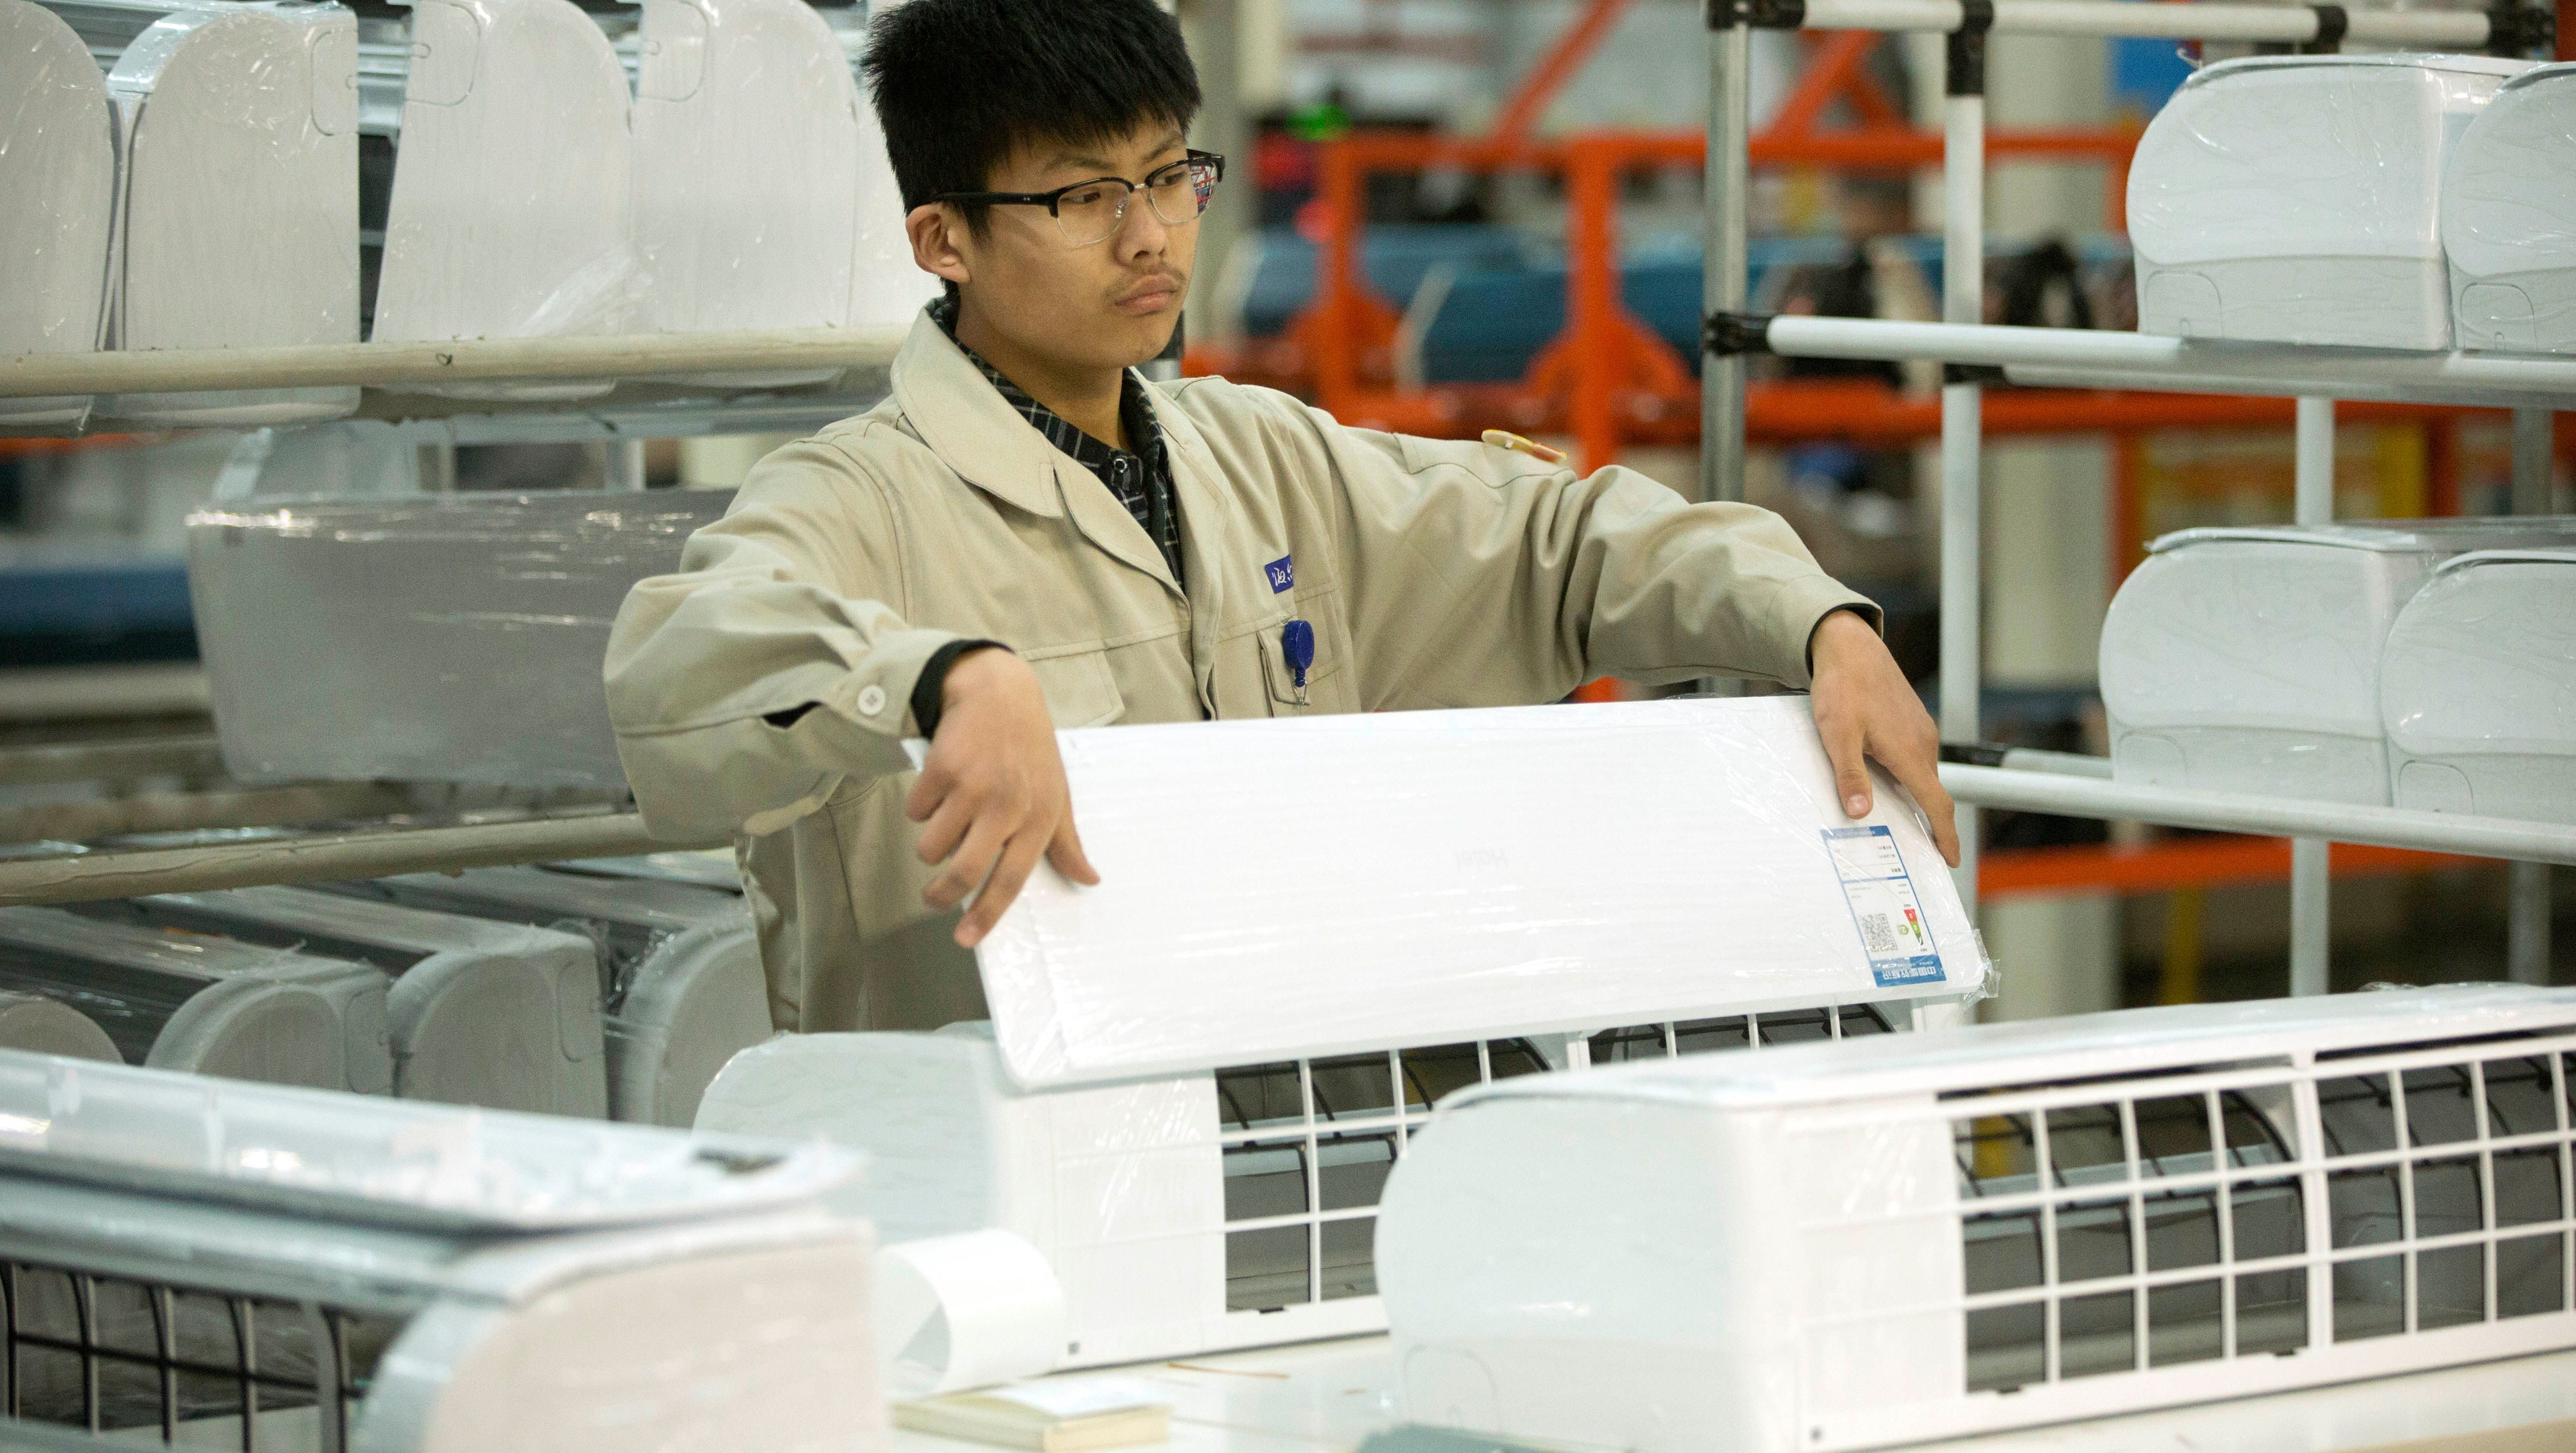 China uses 68 times more energy on cooling than it did in 1990. A factory worker in China assembles an AC.